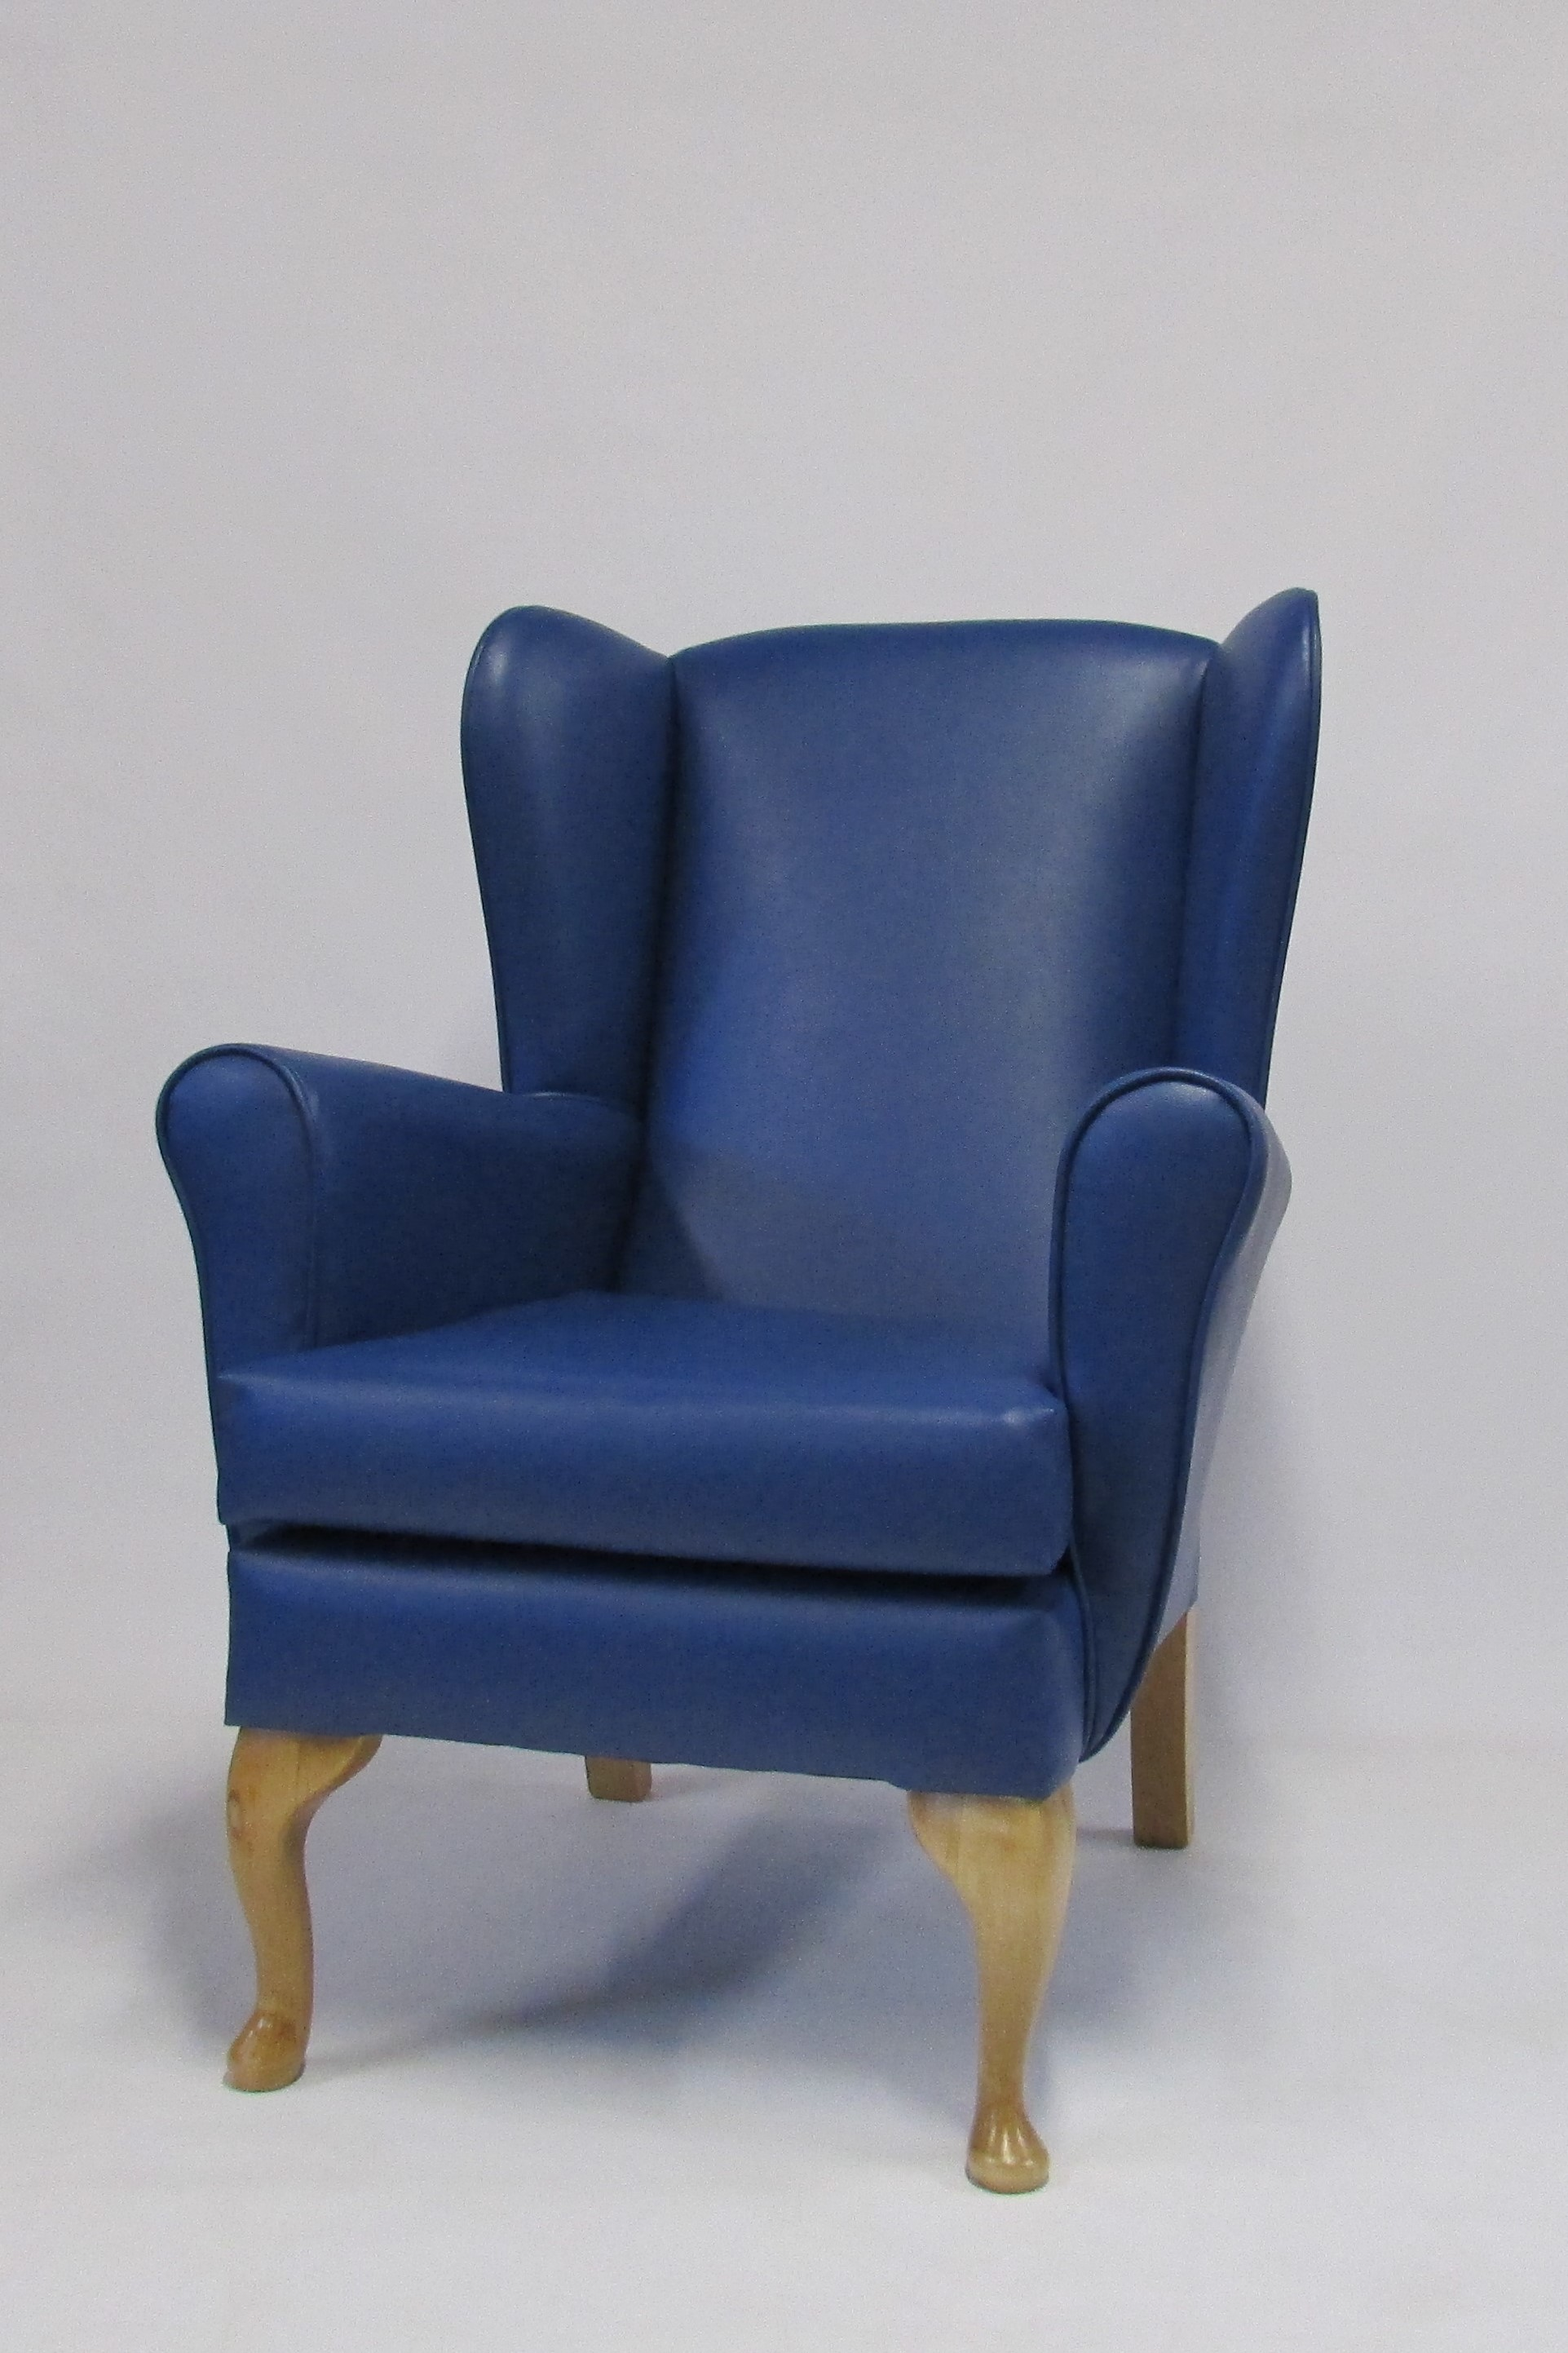 Cavendish Furniture Mobilitybronte High Seat Chair In Faux